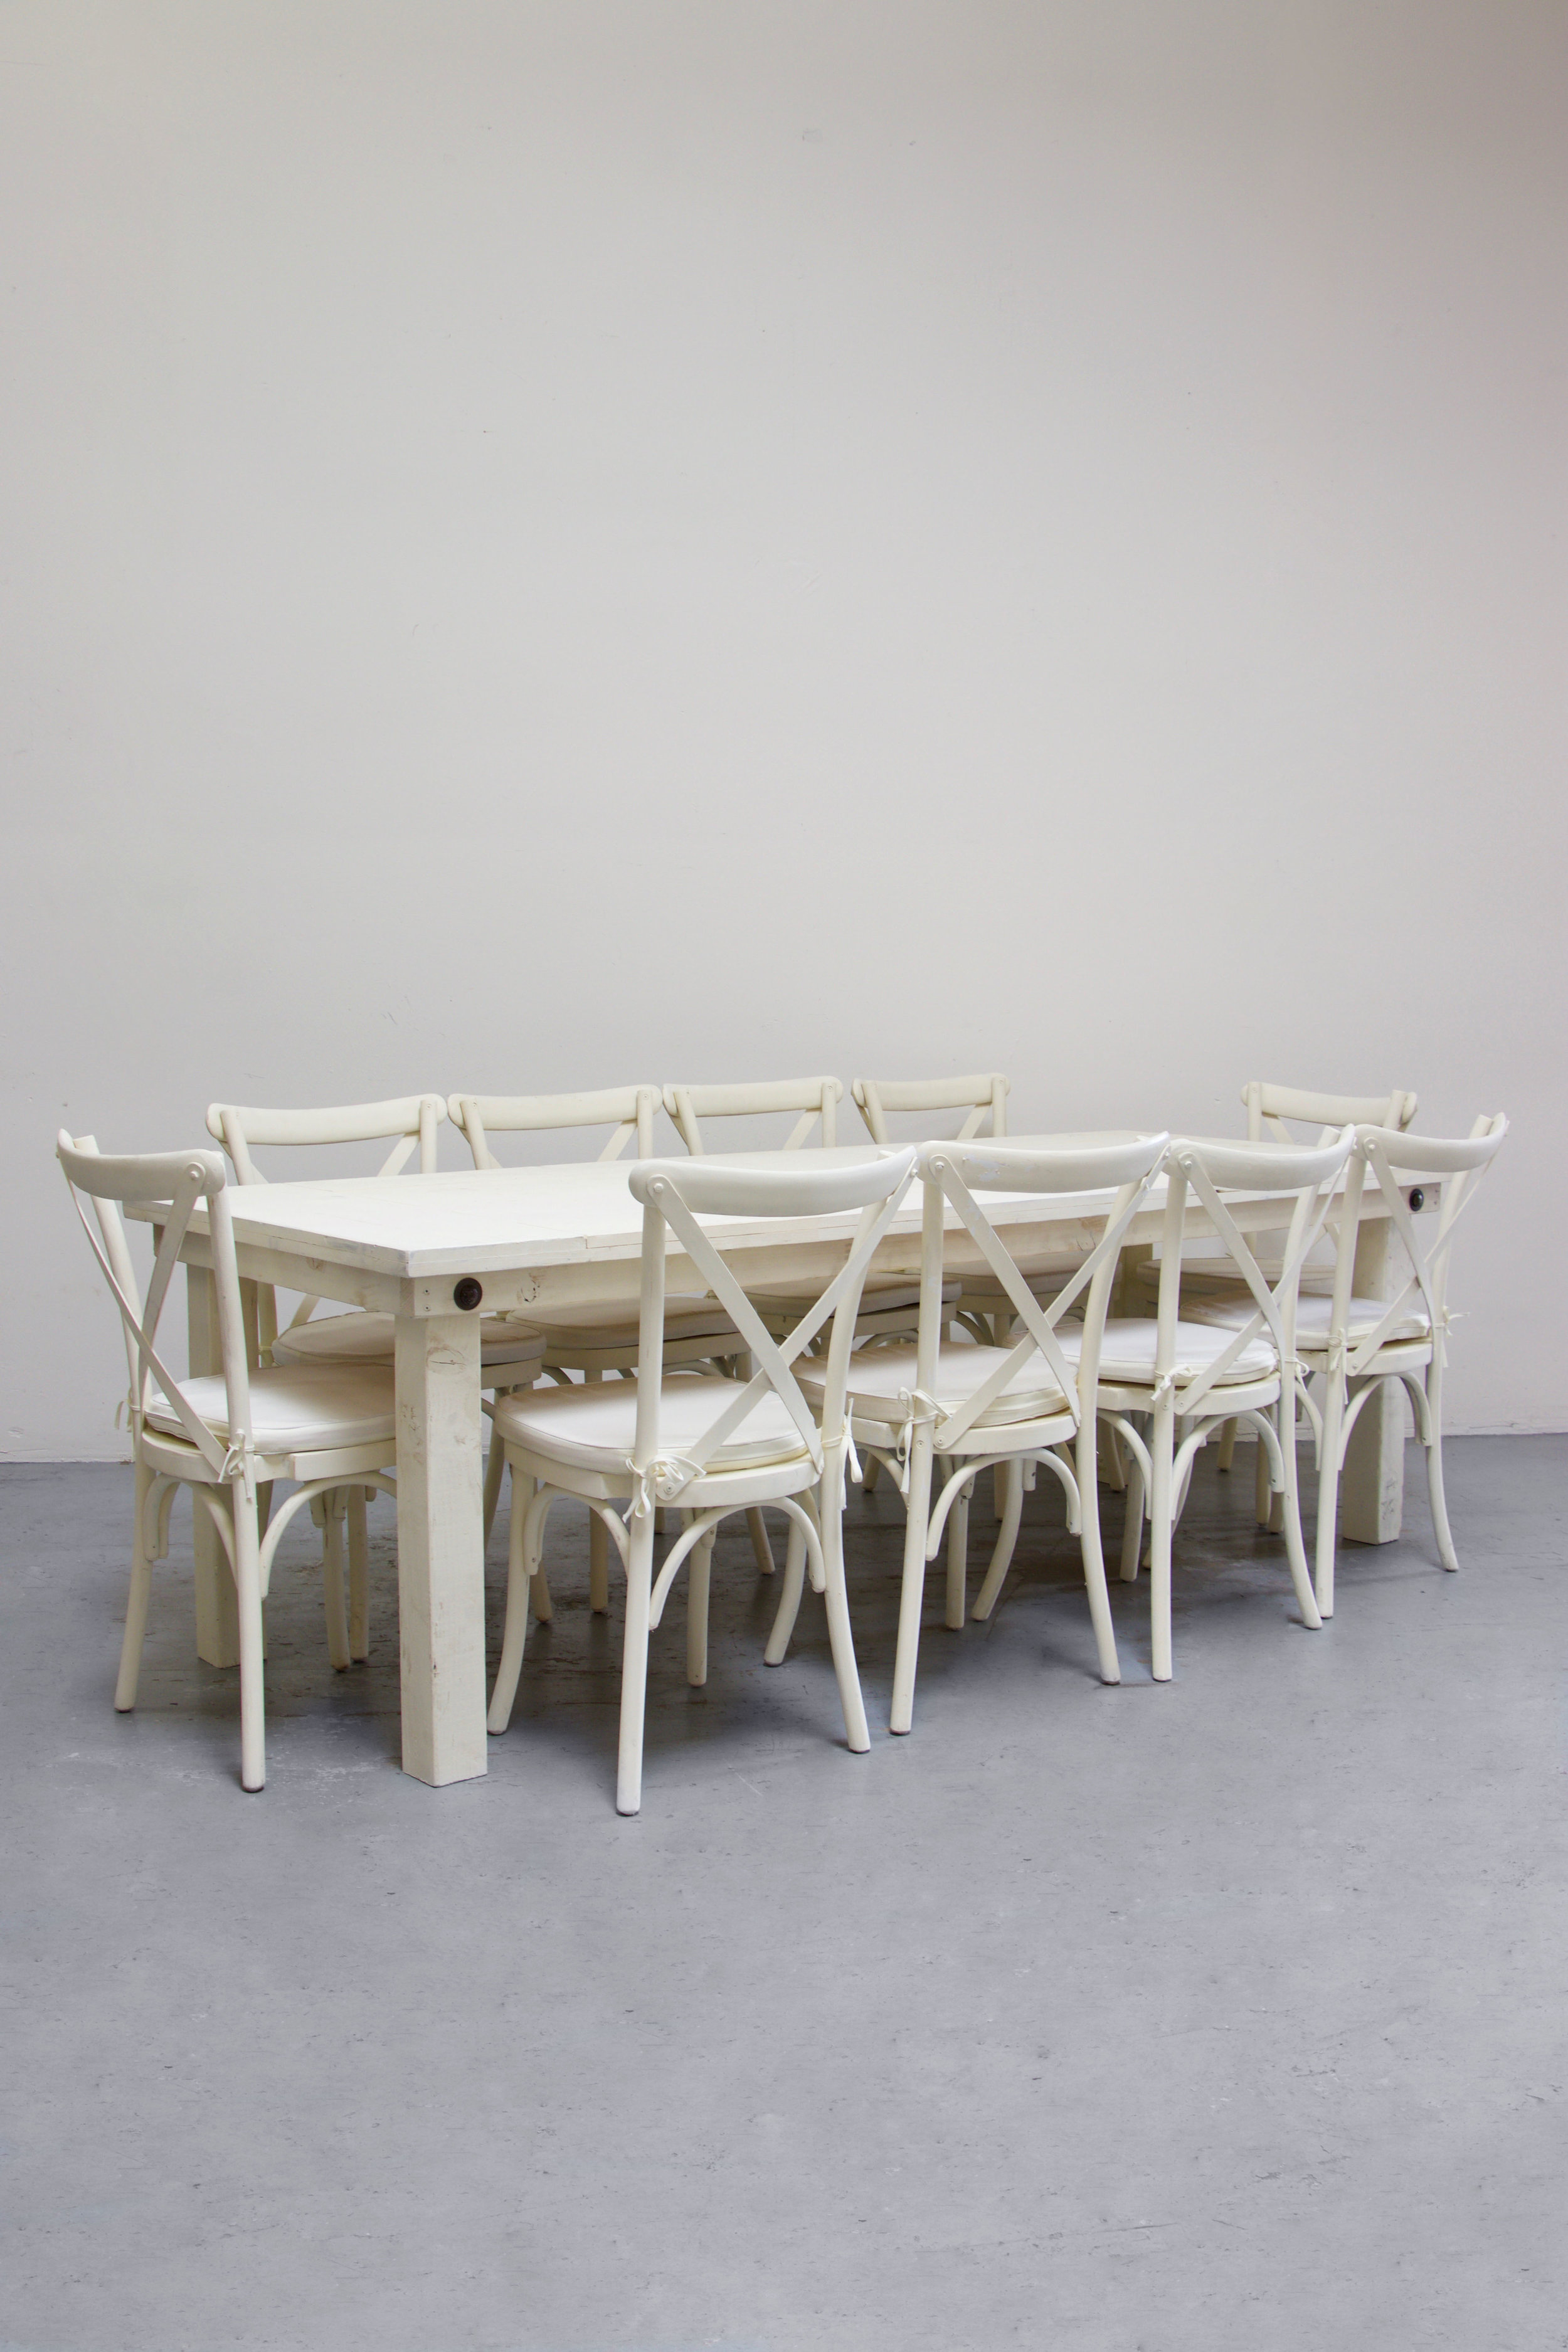 $160 1 Vintage White Farm Table w/ 10 Cross-Back Chairs